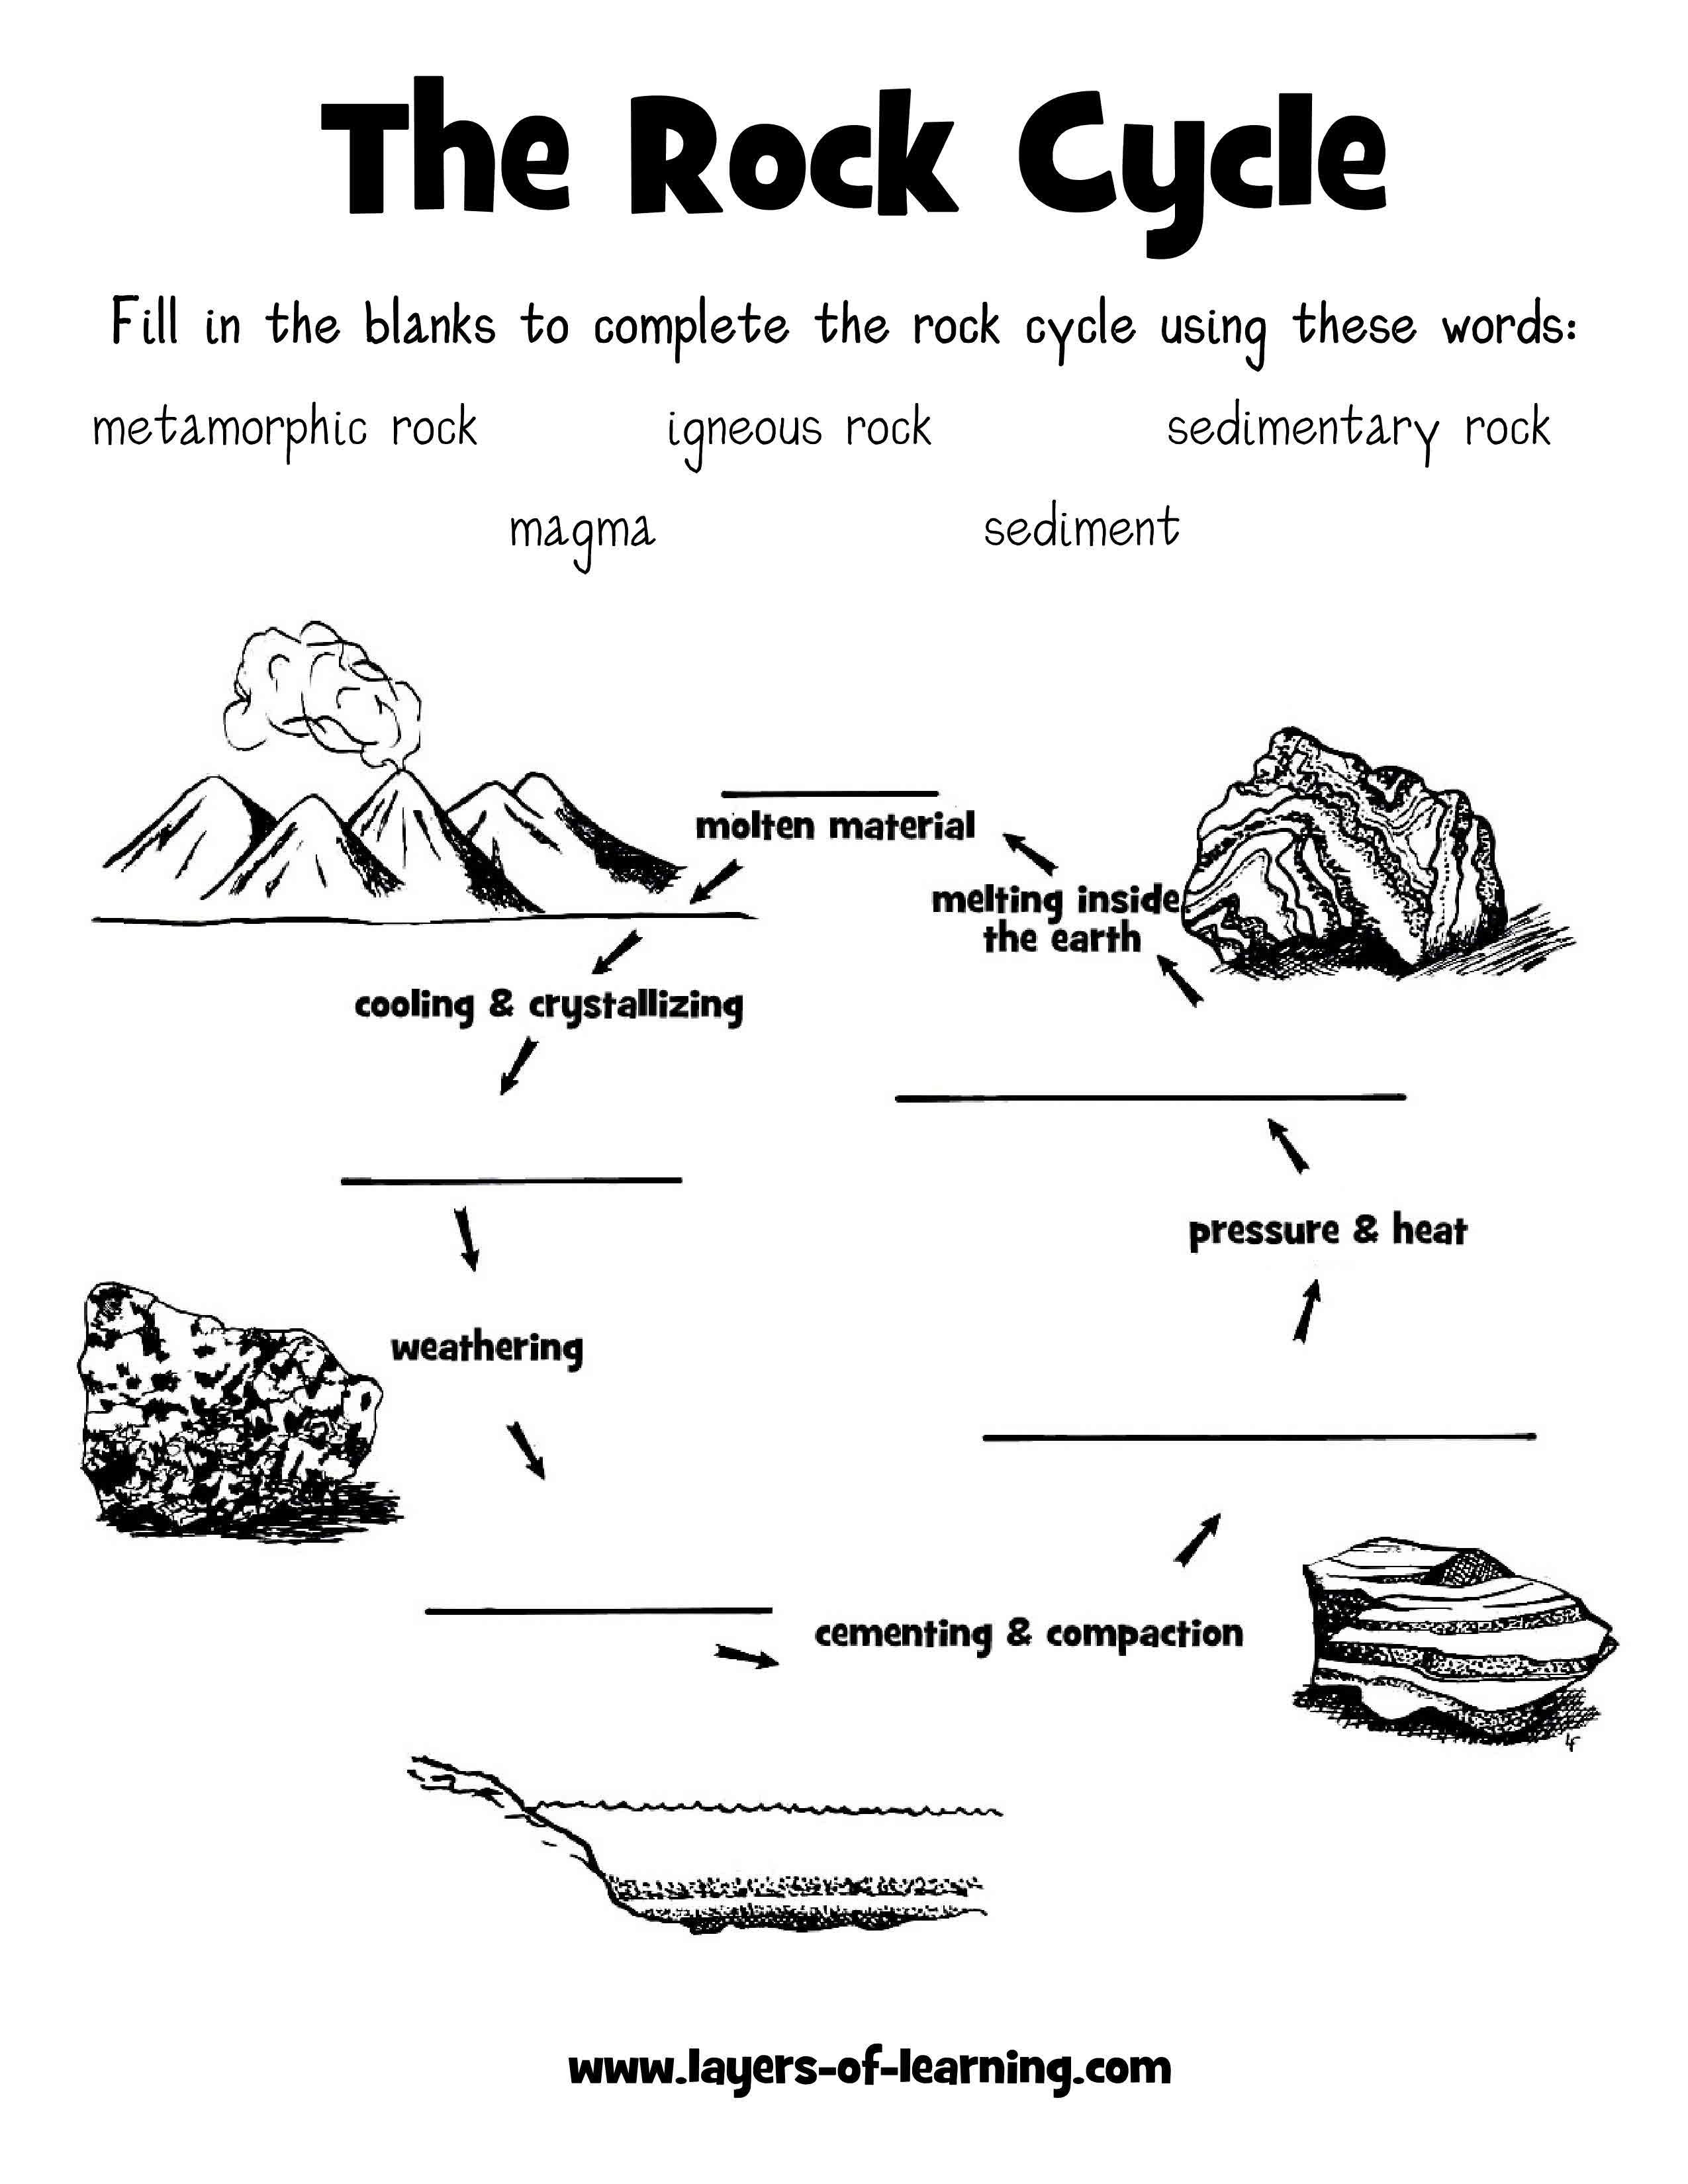 hight resolution of rock cycle worksheet - Layers of Learning   Earth science lessons